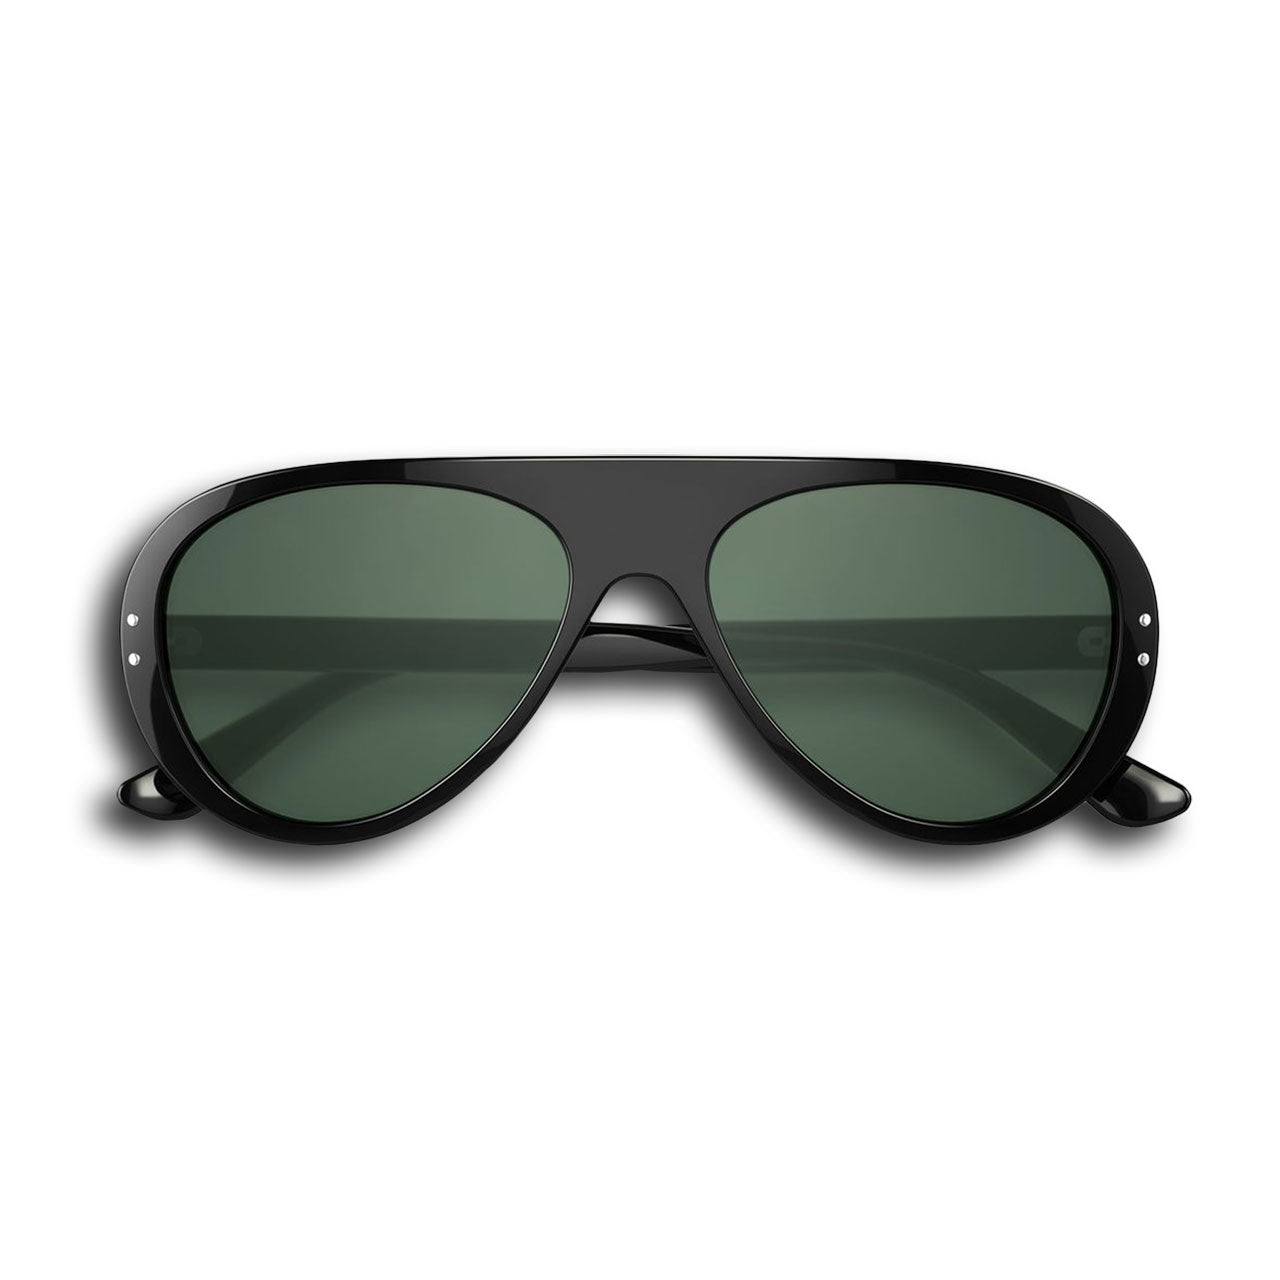 Vallon Surf Aviator Sunglasses